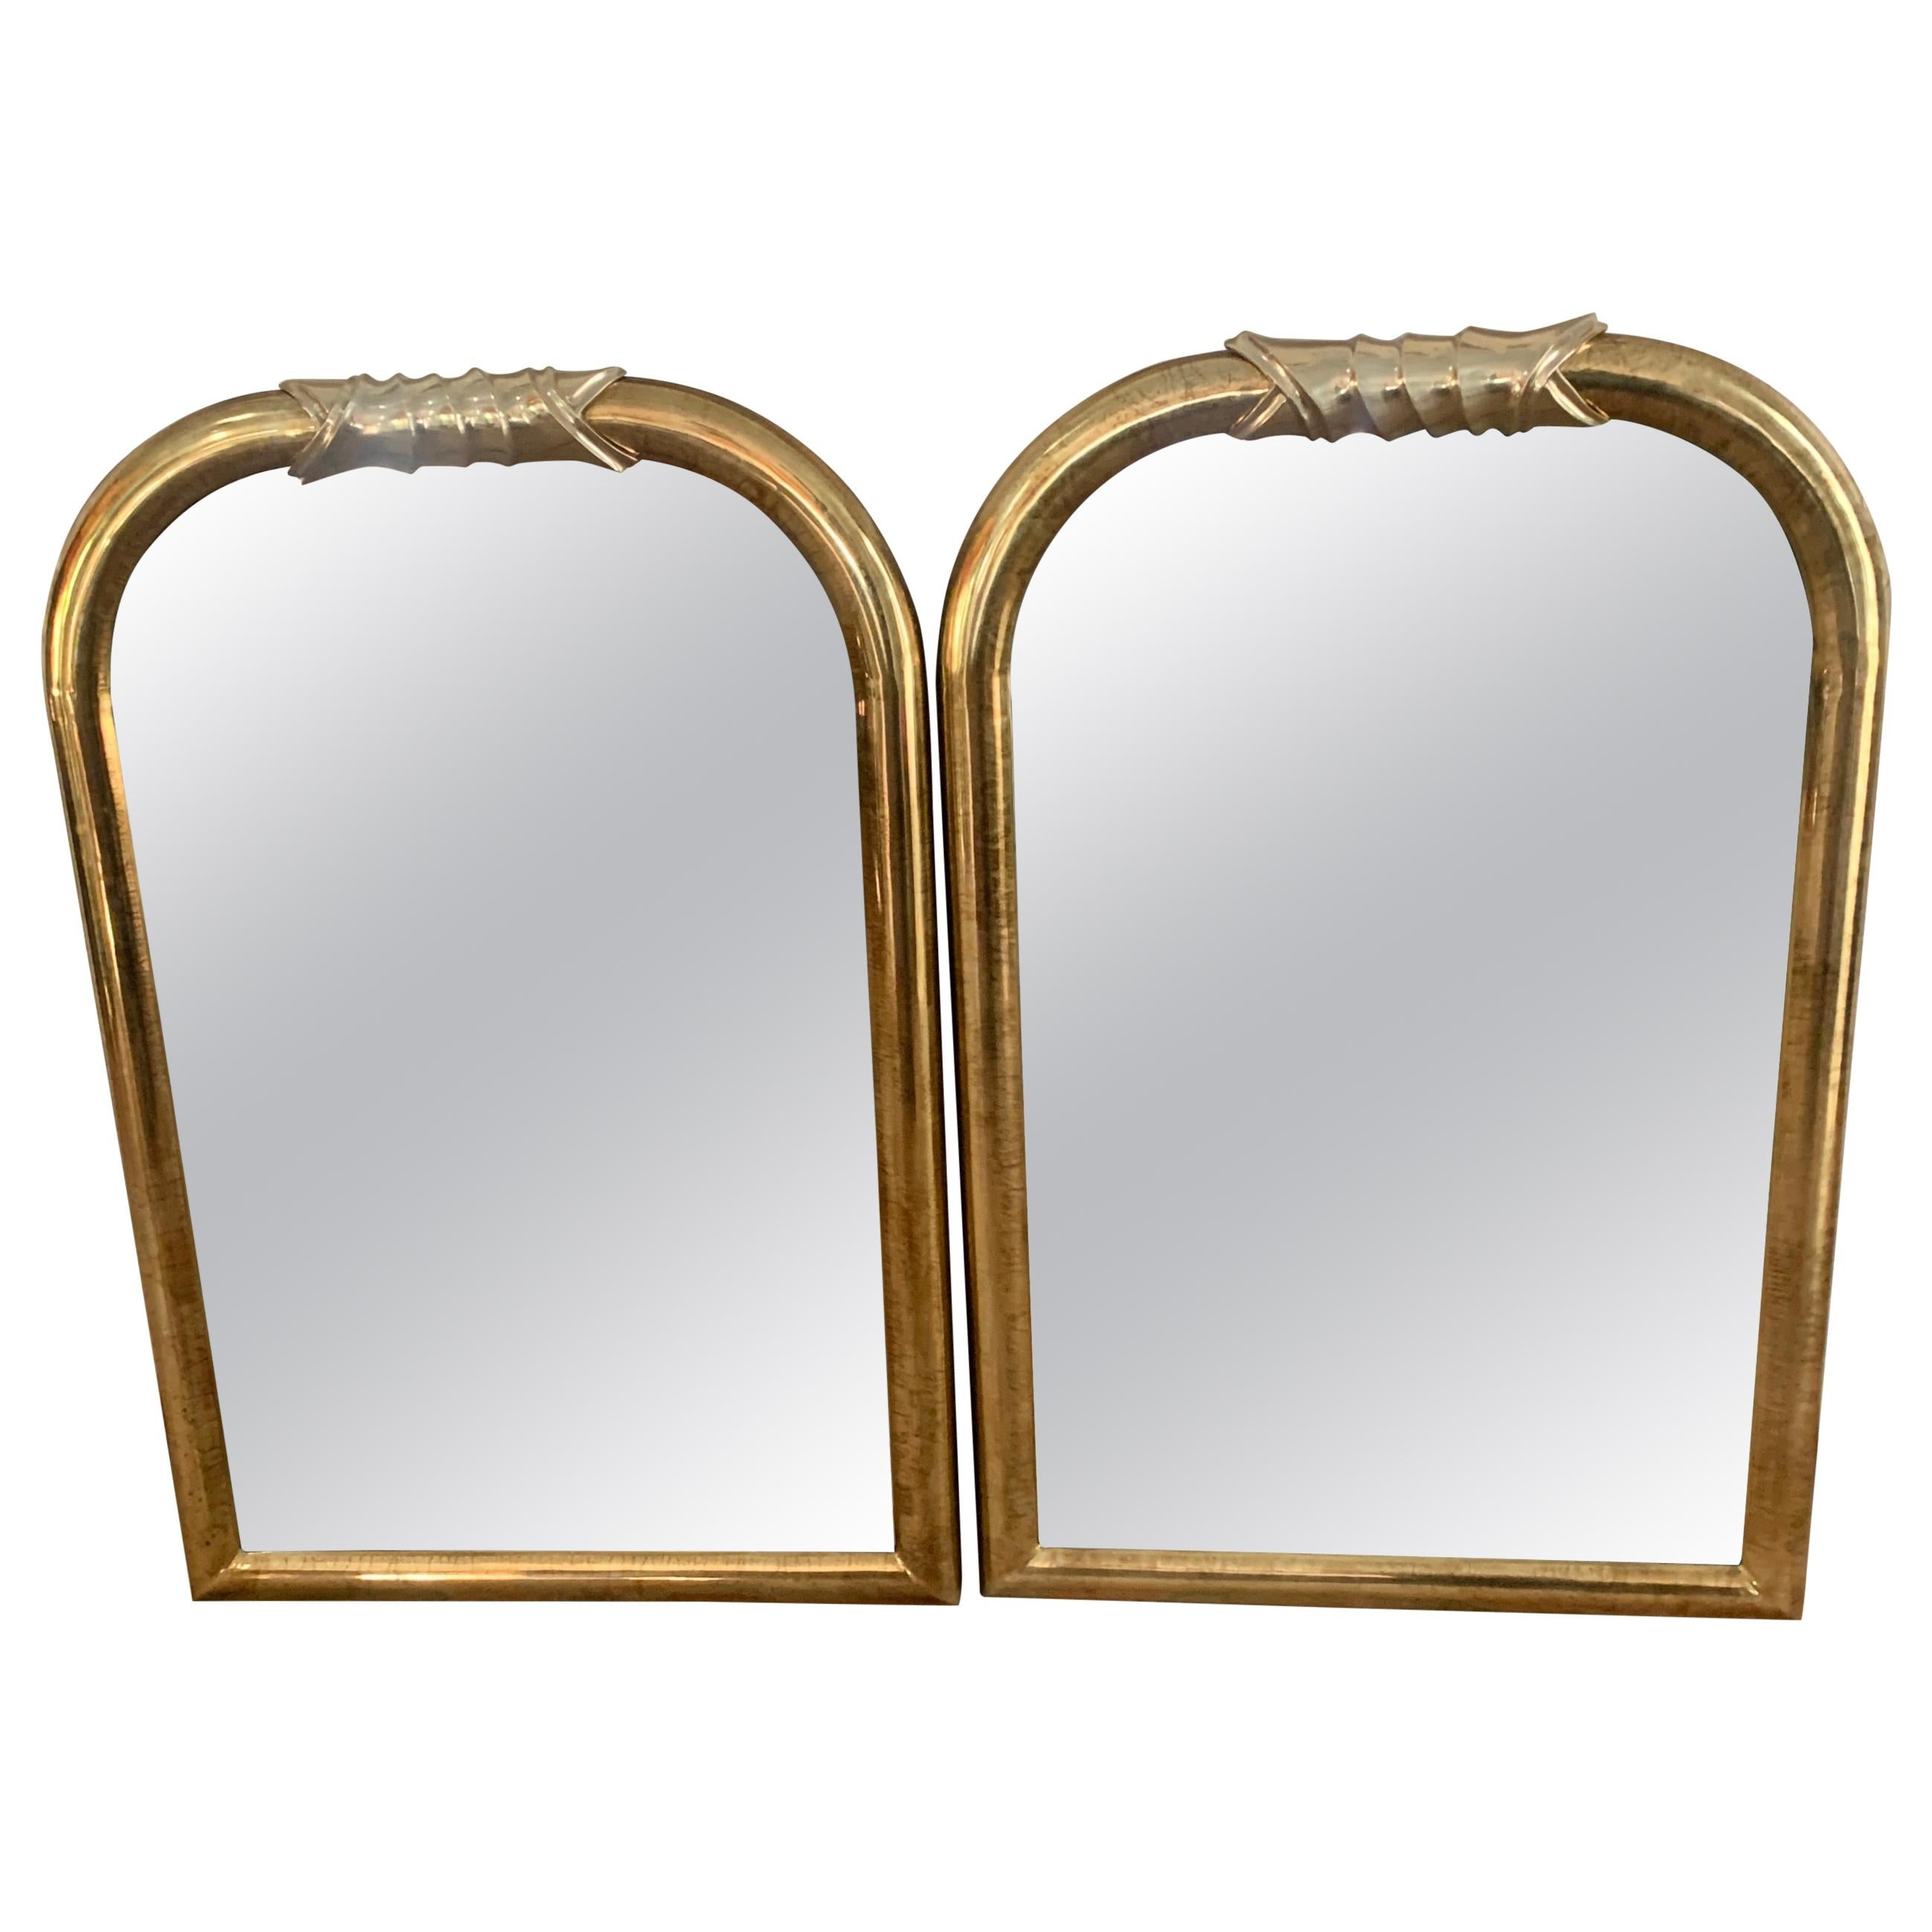 Pair of Brass Wall Mirrors in the Style of Louis Phillipe